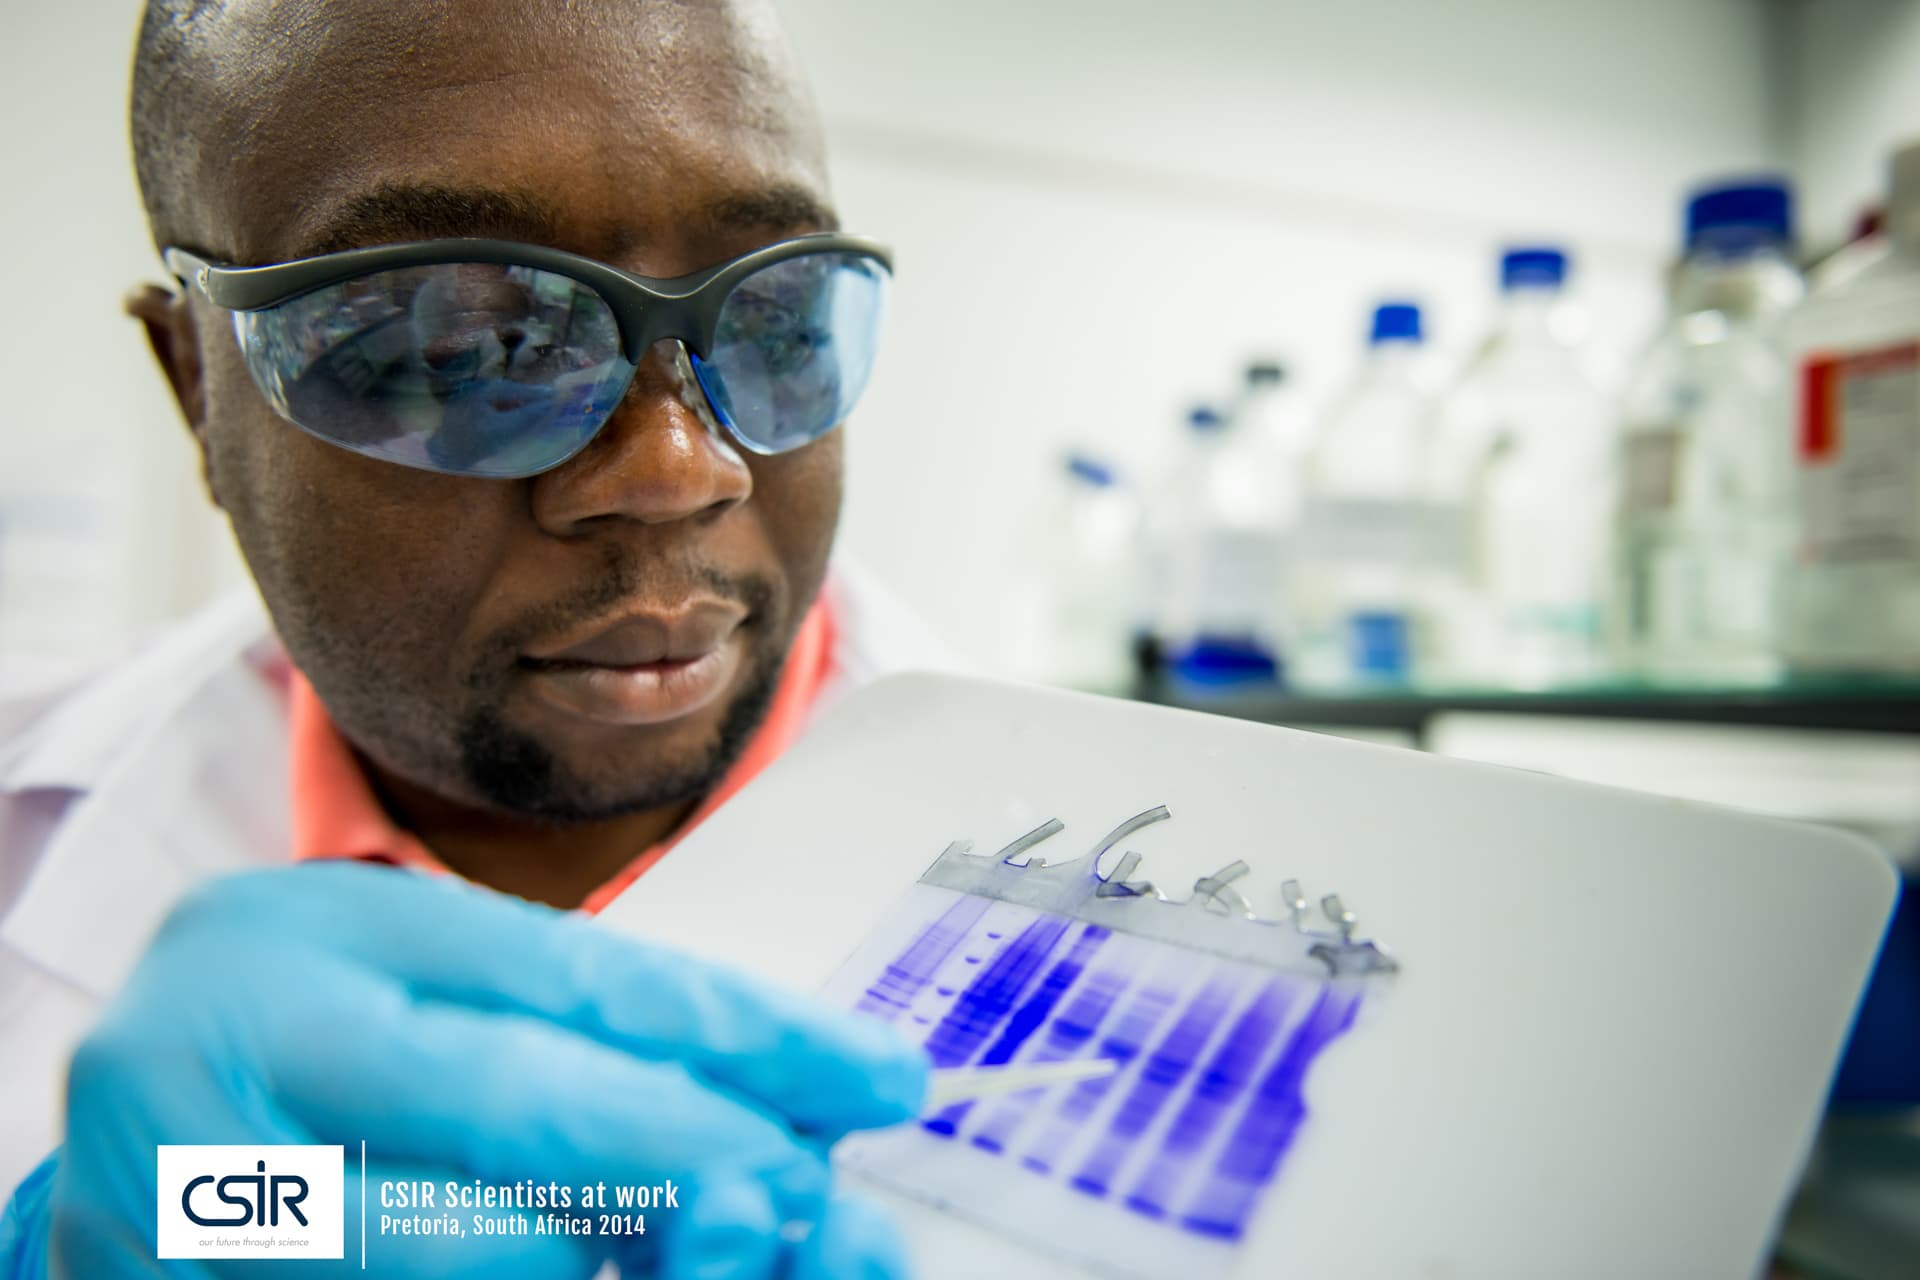 Black Scientist with glasses at work